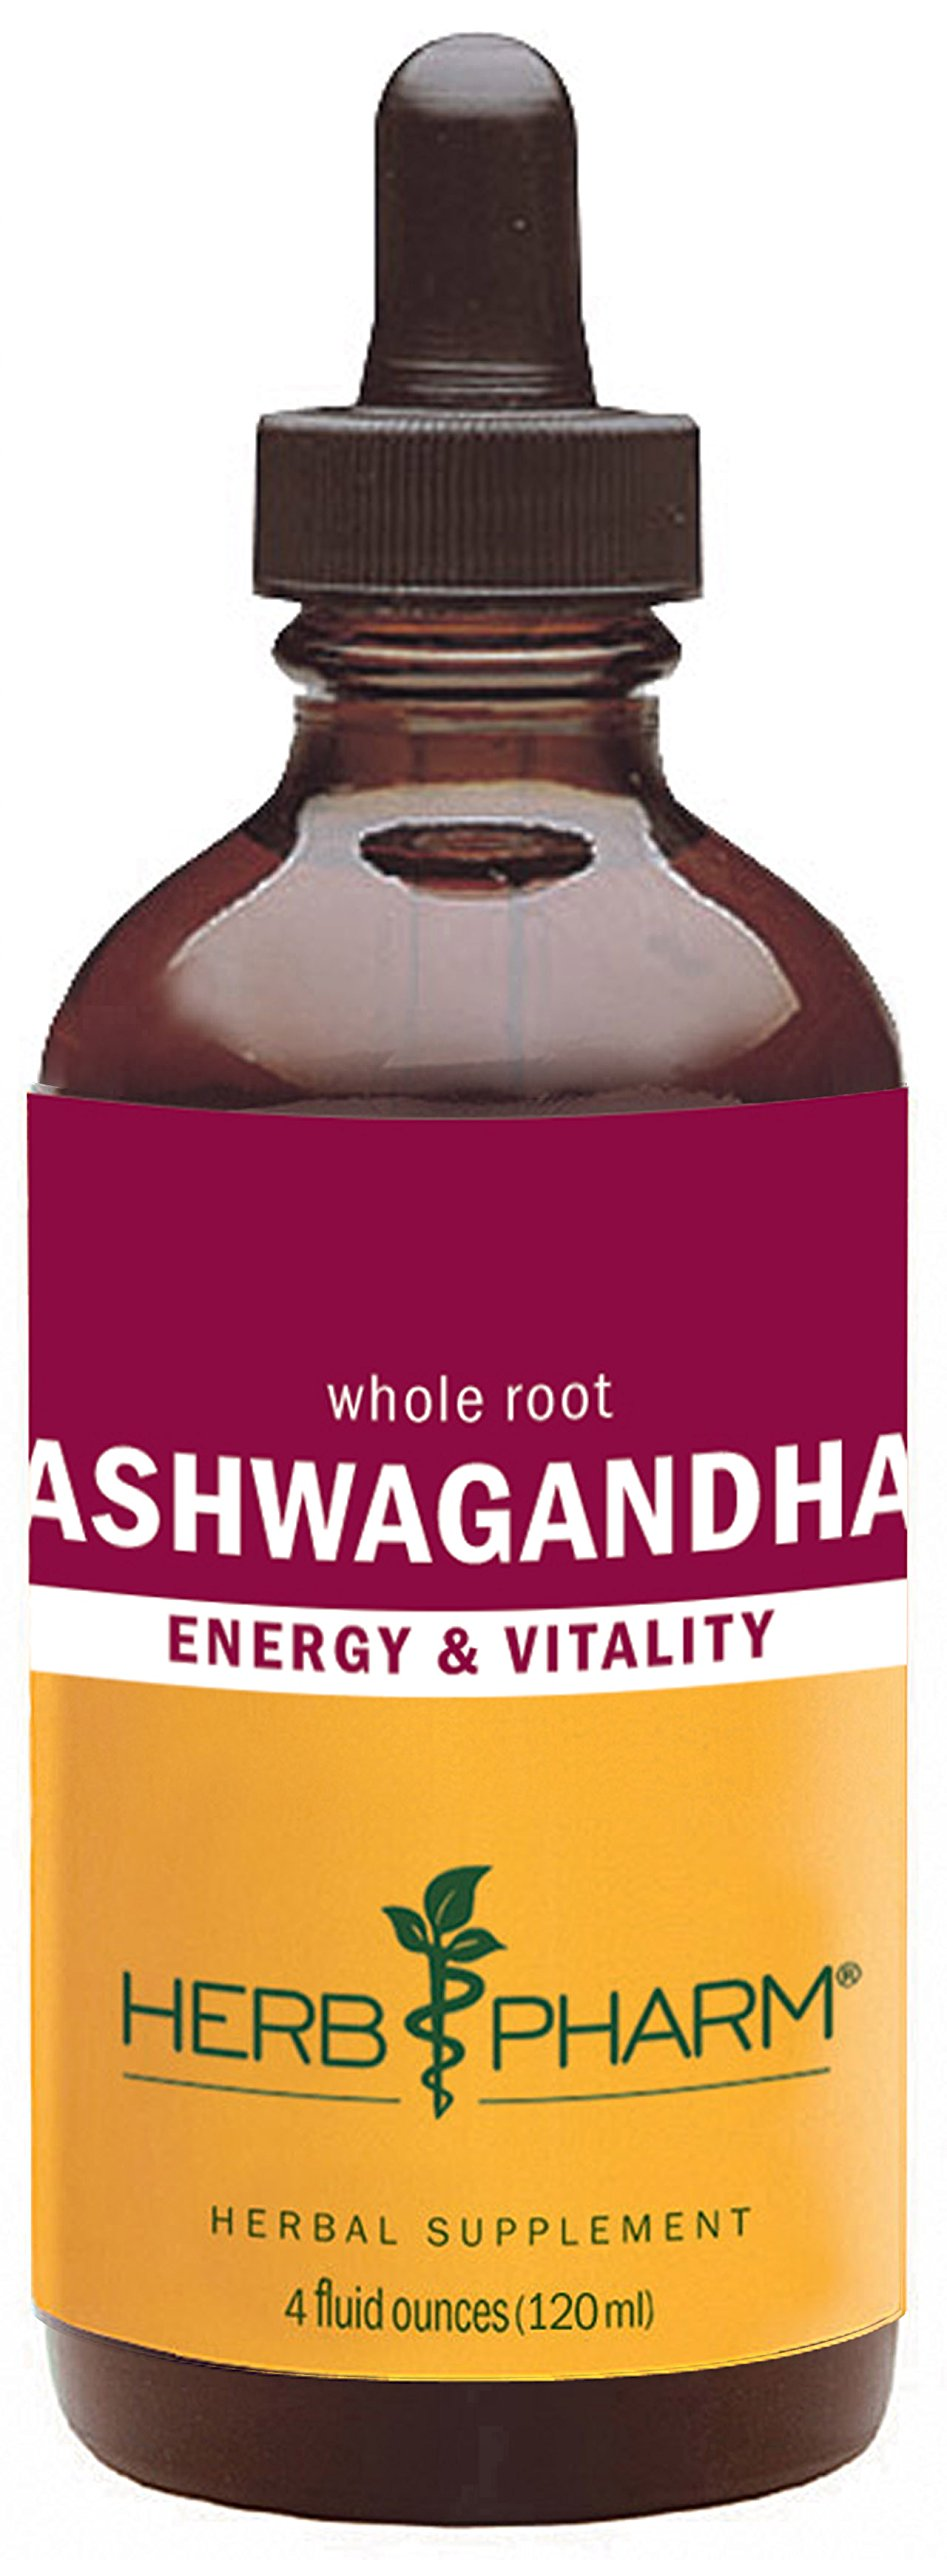 Herb Pharm Certified Organic Ashwagandha Extract for Energy and Vitality - 4 Ounce